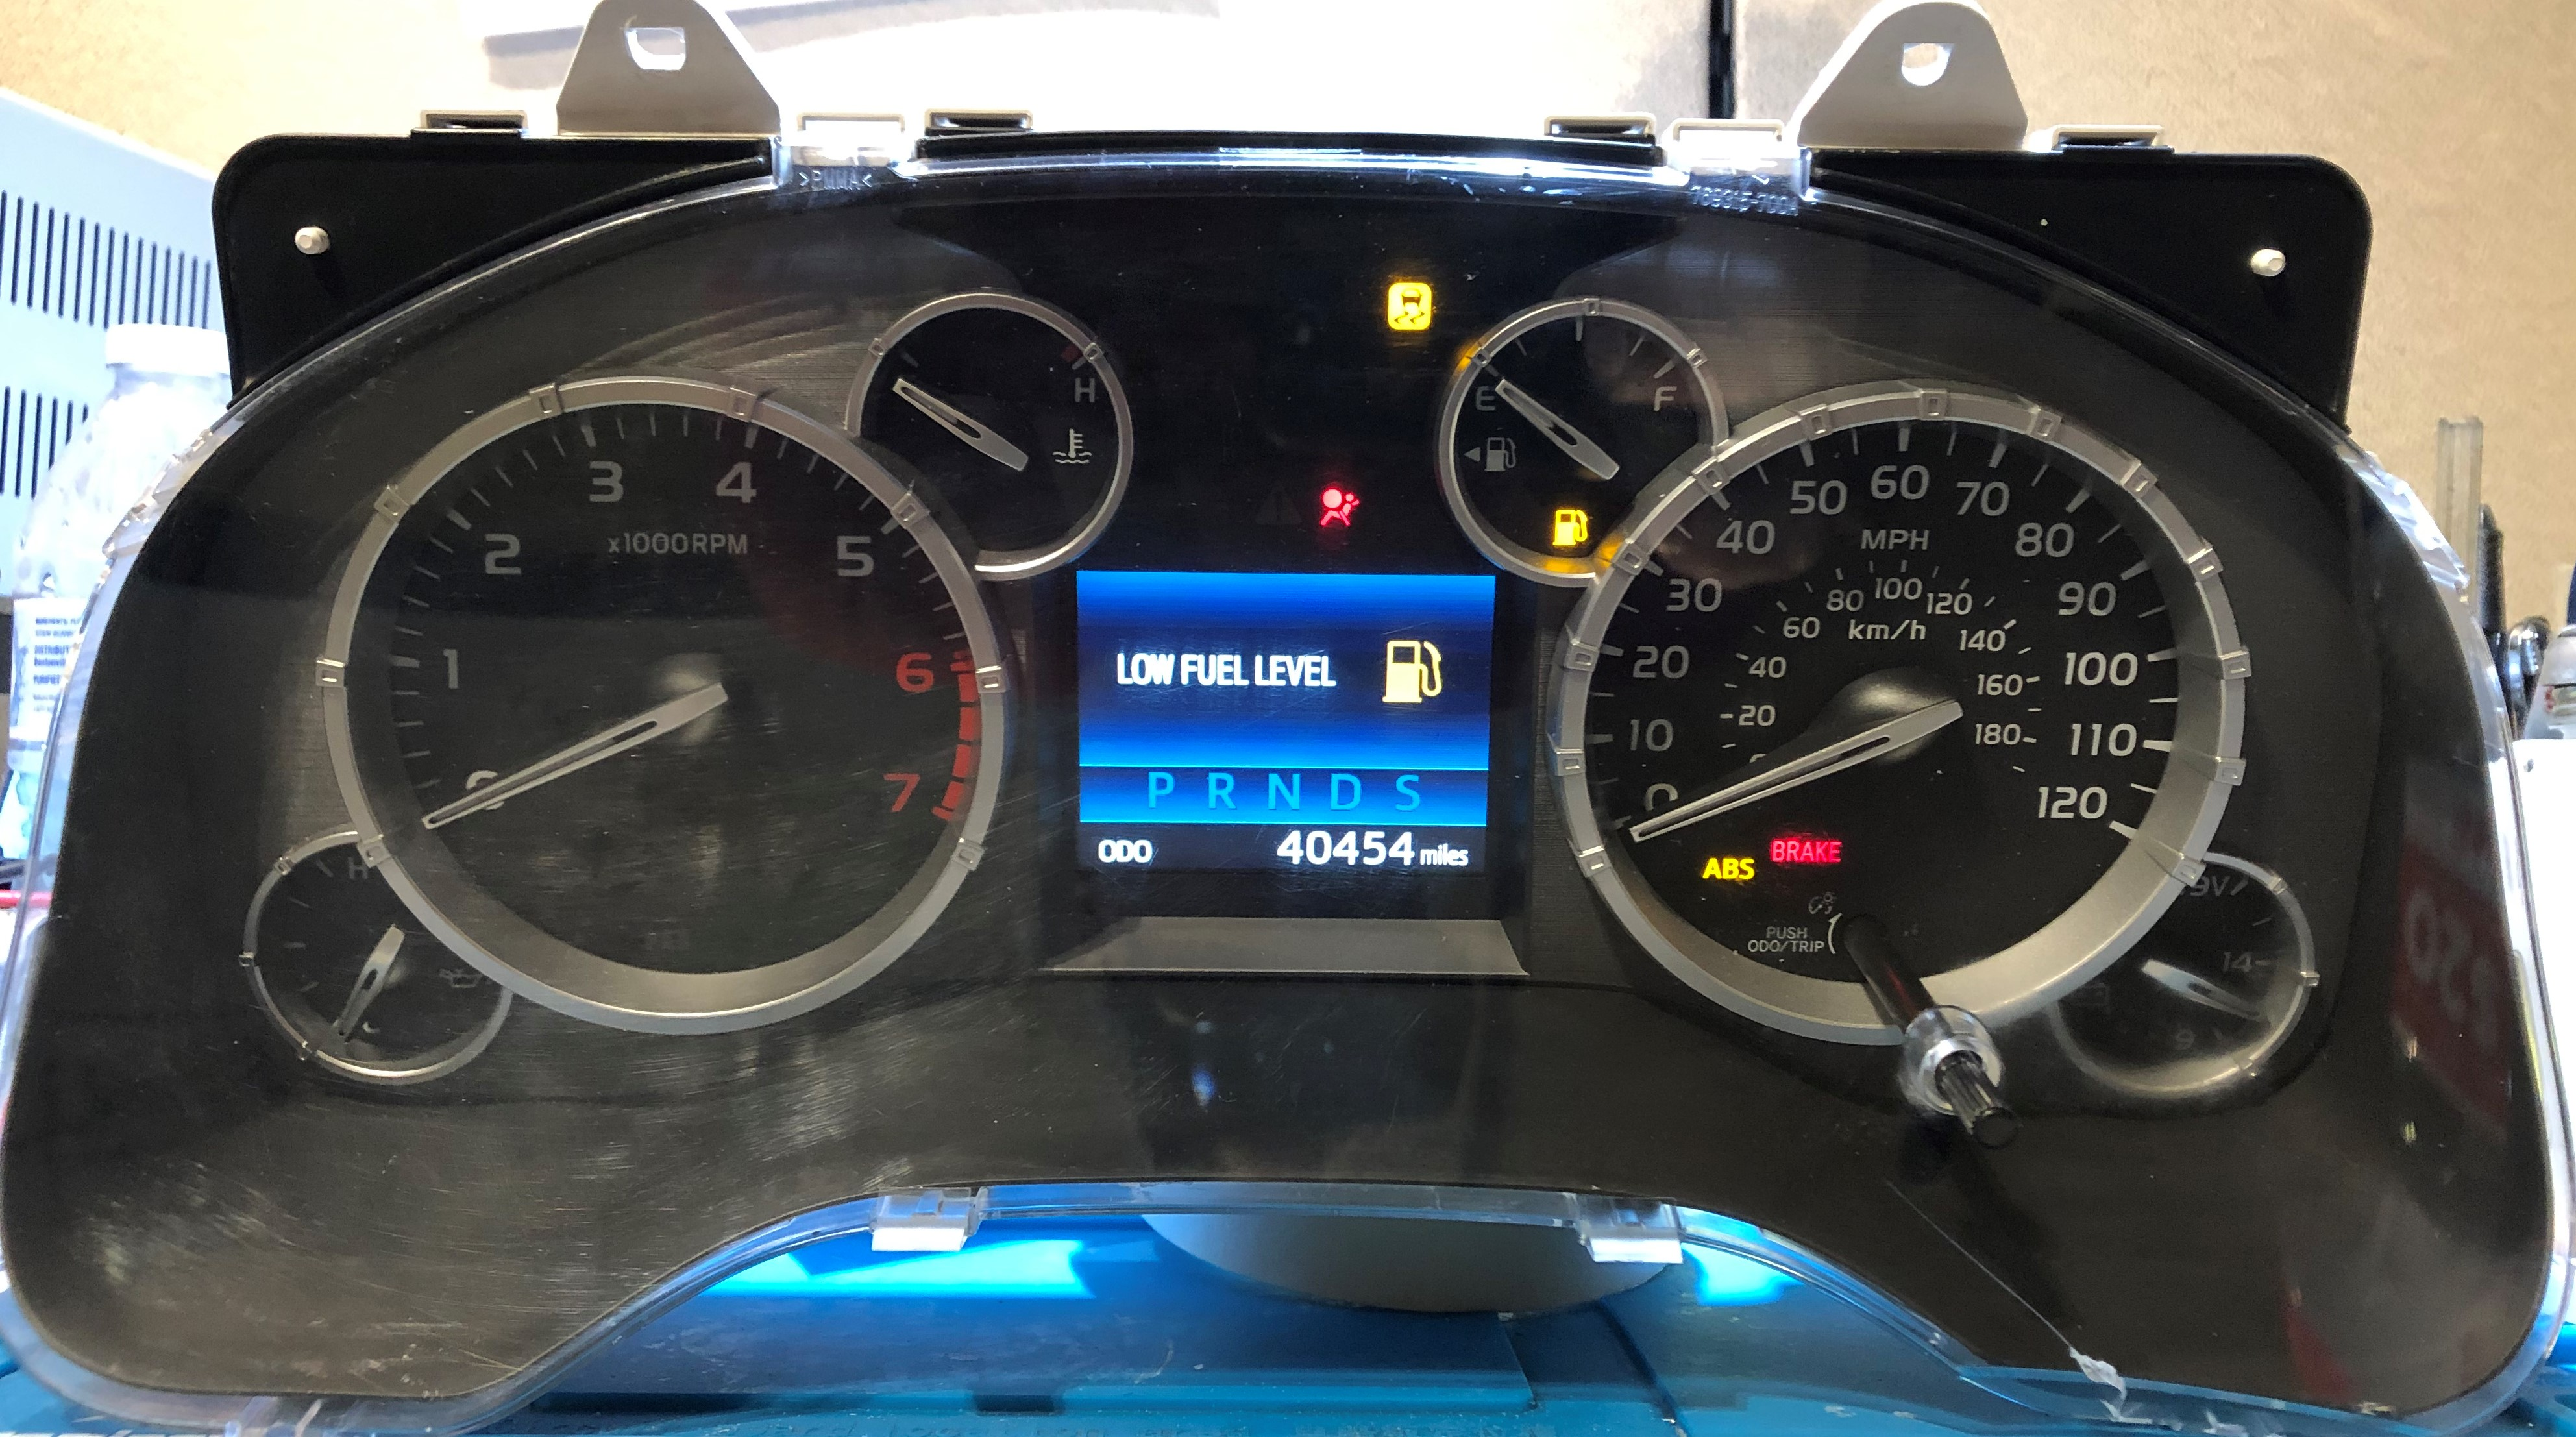 2014 Toyota Tundra Used Dashboard Instrument Cluster For Sale Mph Dashboard Instrument Cluster